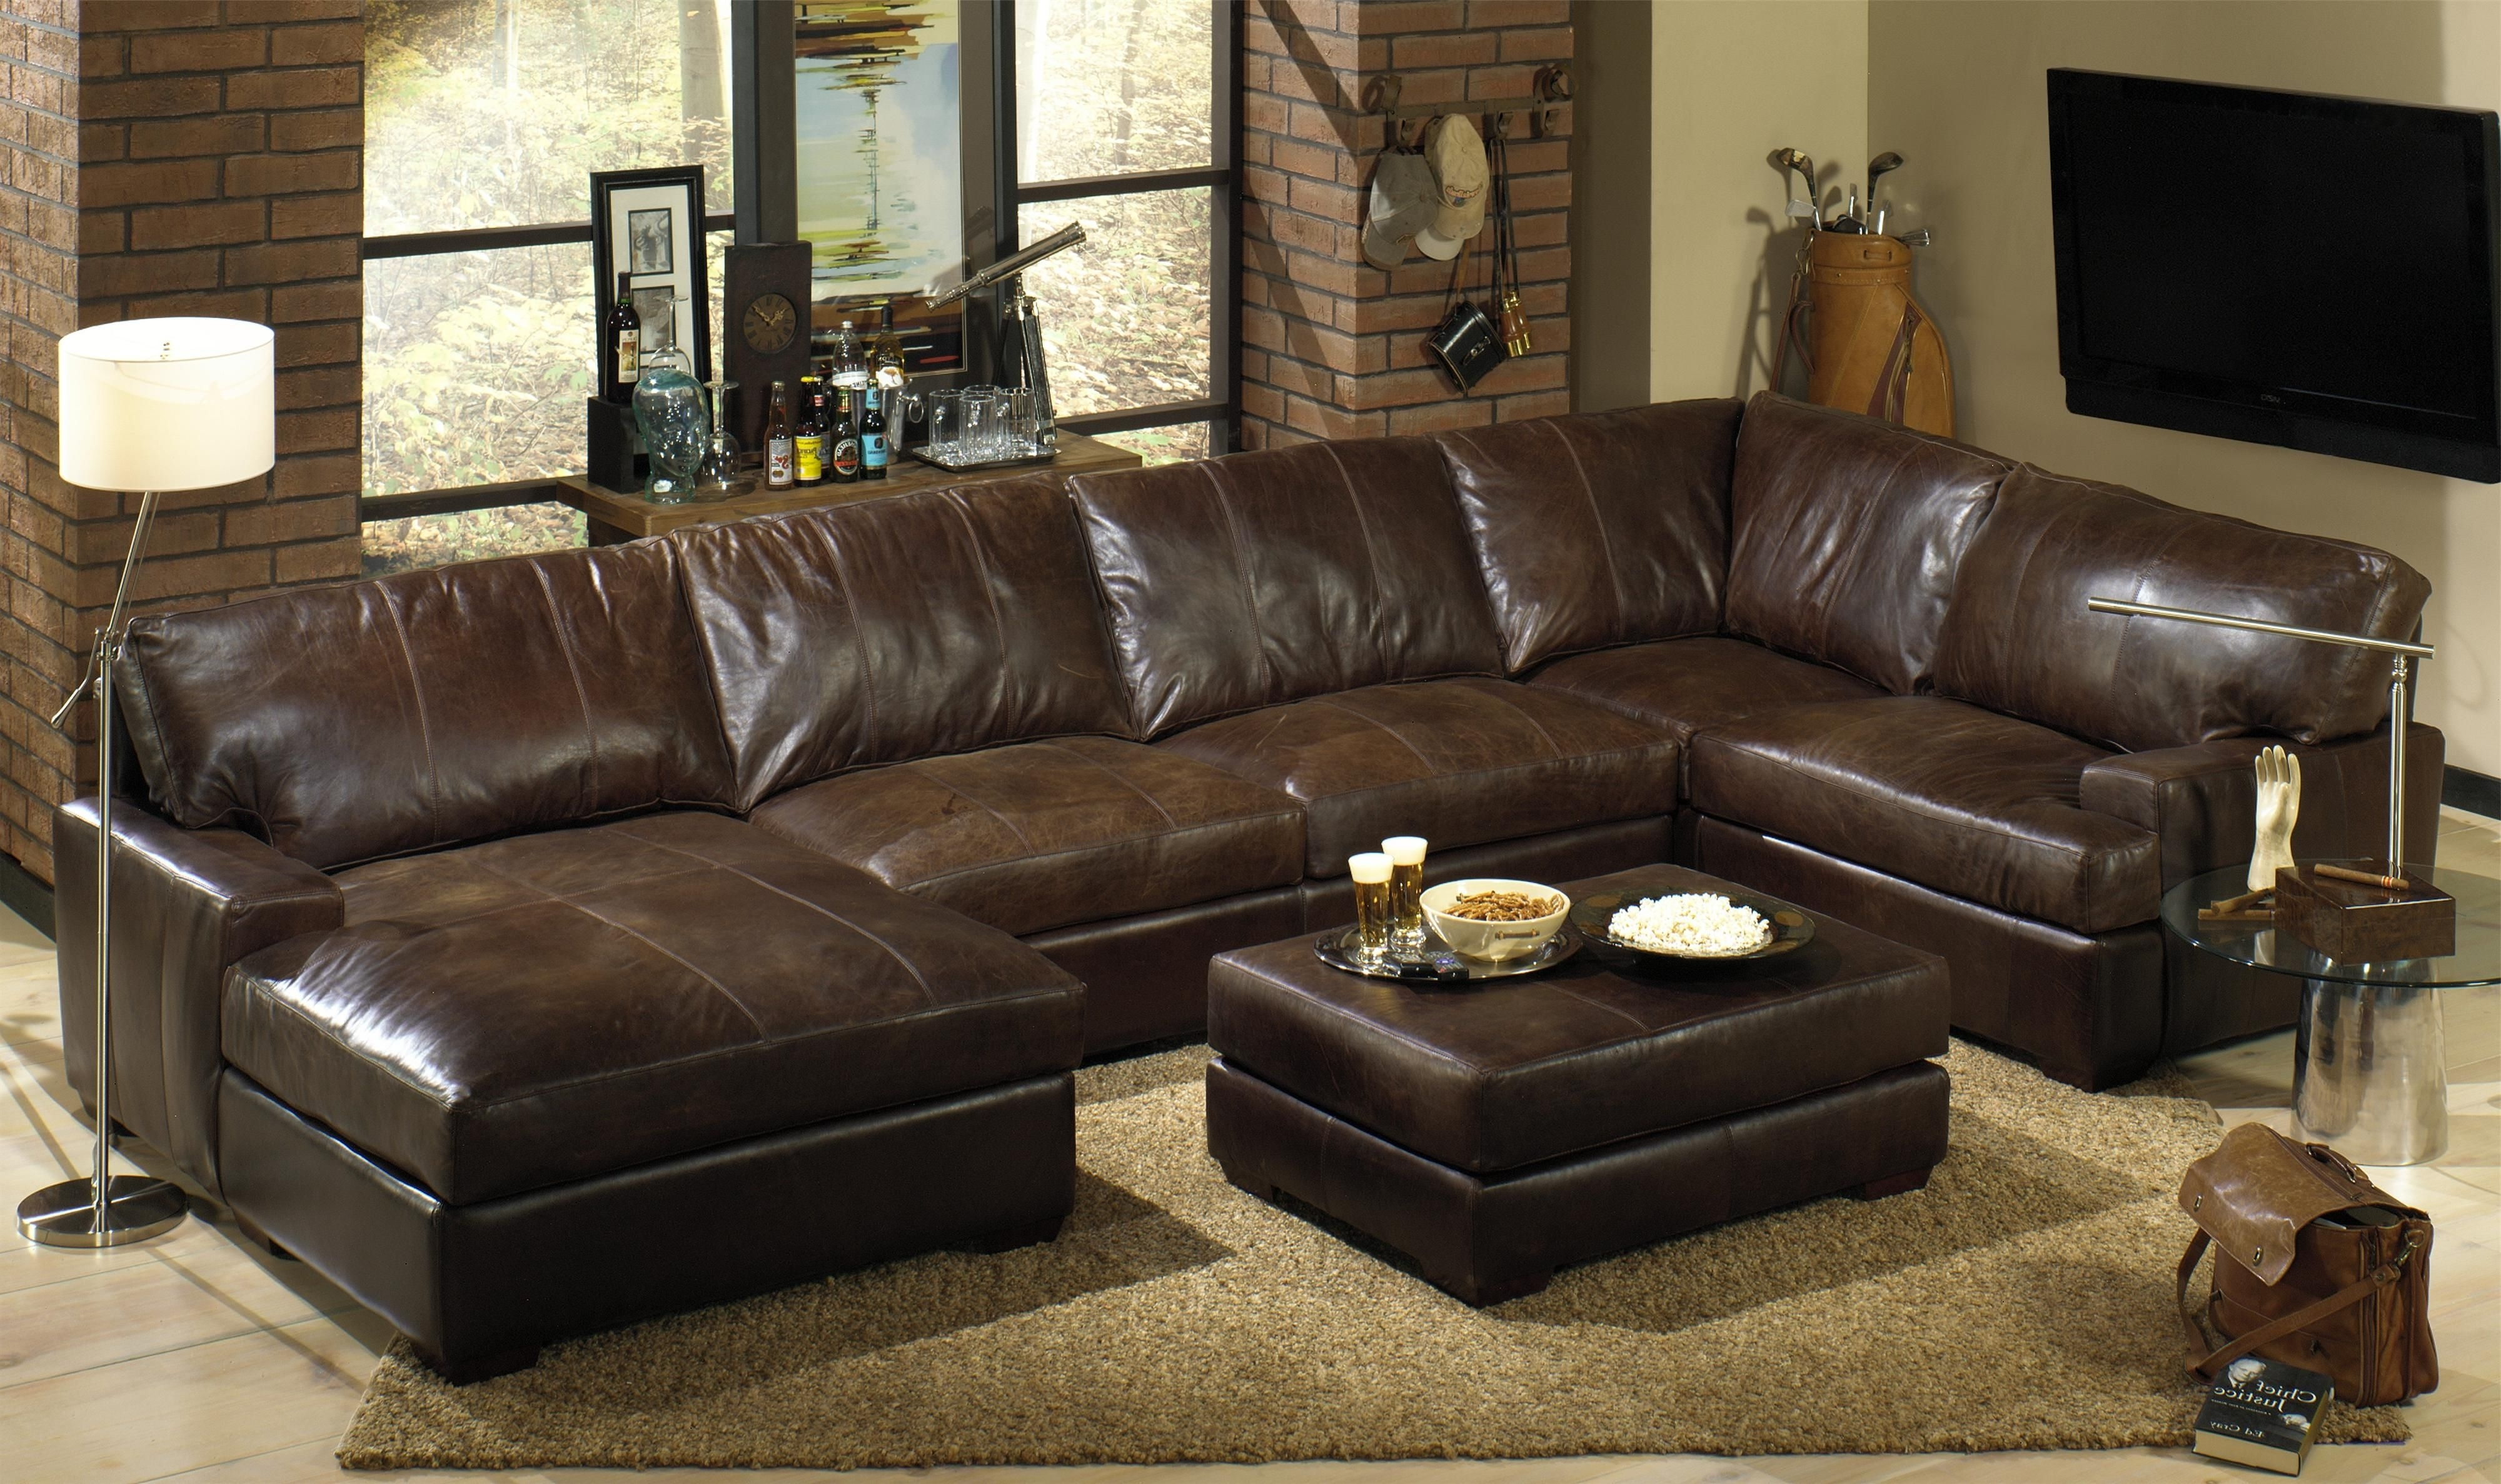 Trendy Comfortable Sectional Couches For Versatile Home Furniture Ideas Inside Leather Sectional Sofas With Ottoman (View 19 of 20)